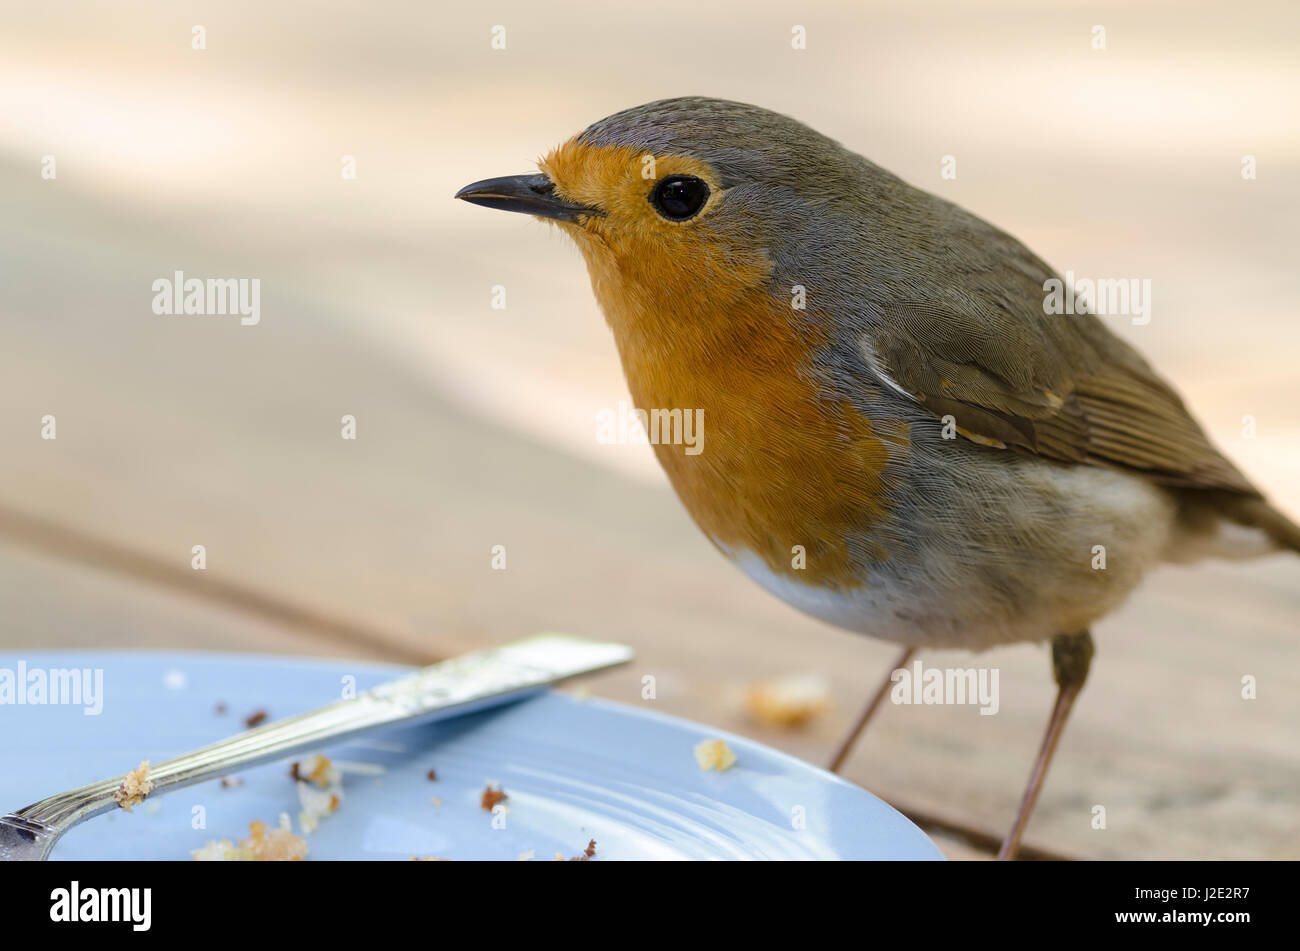 Robin erithacus rubecula scavenging crumbs from a plate Stock Photo